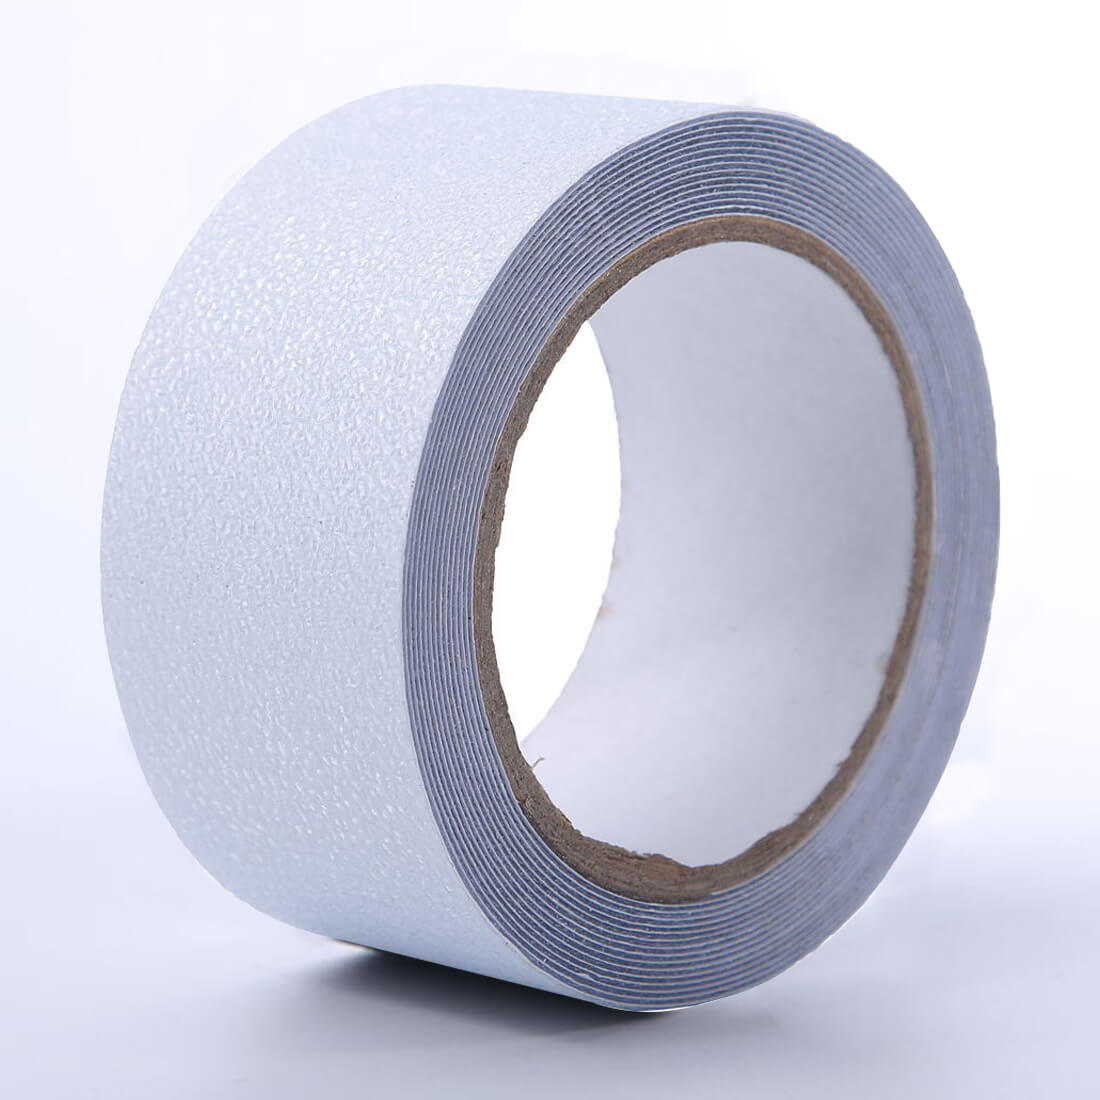 /product/eonbon-wholesale-pet-anti-slip-tape-for-stairs-10.html